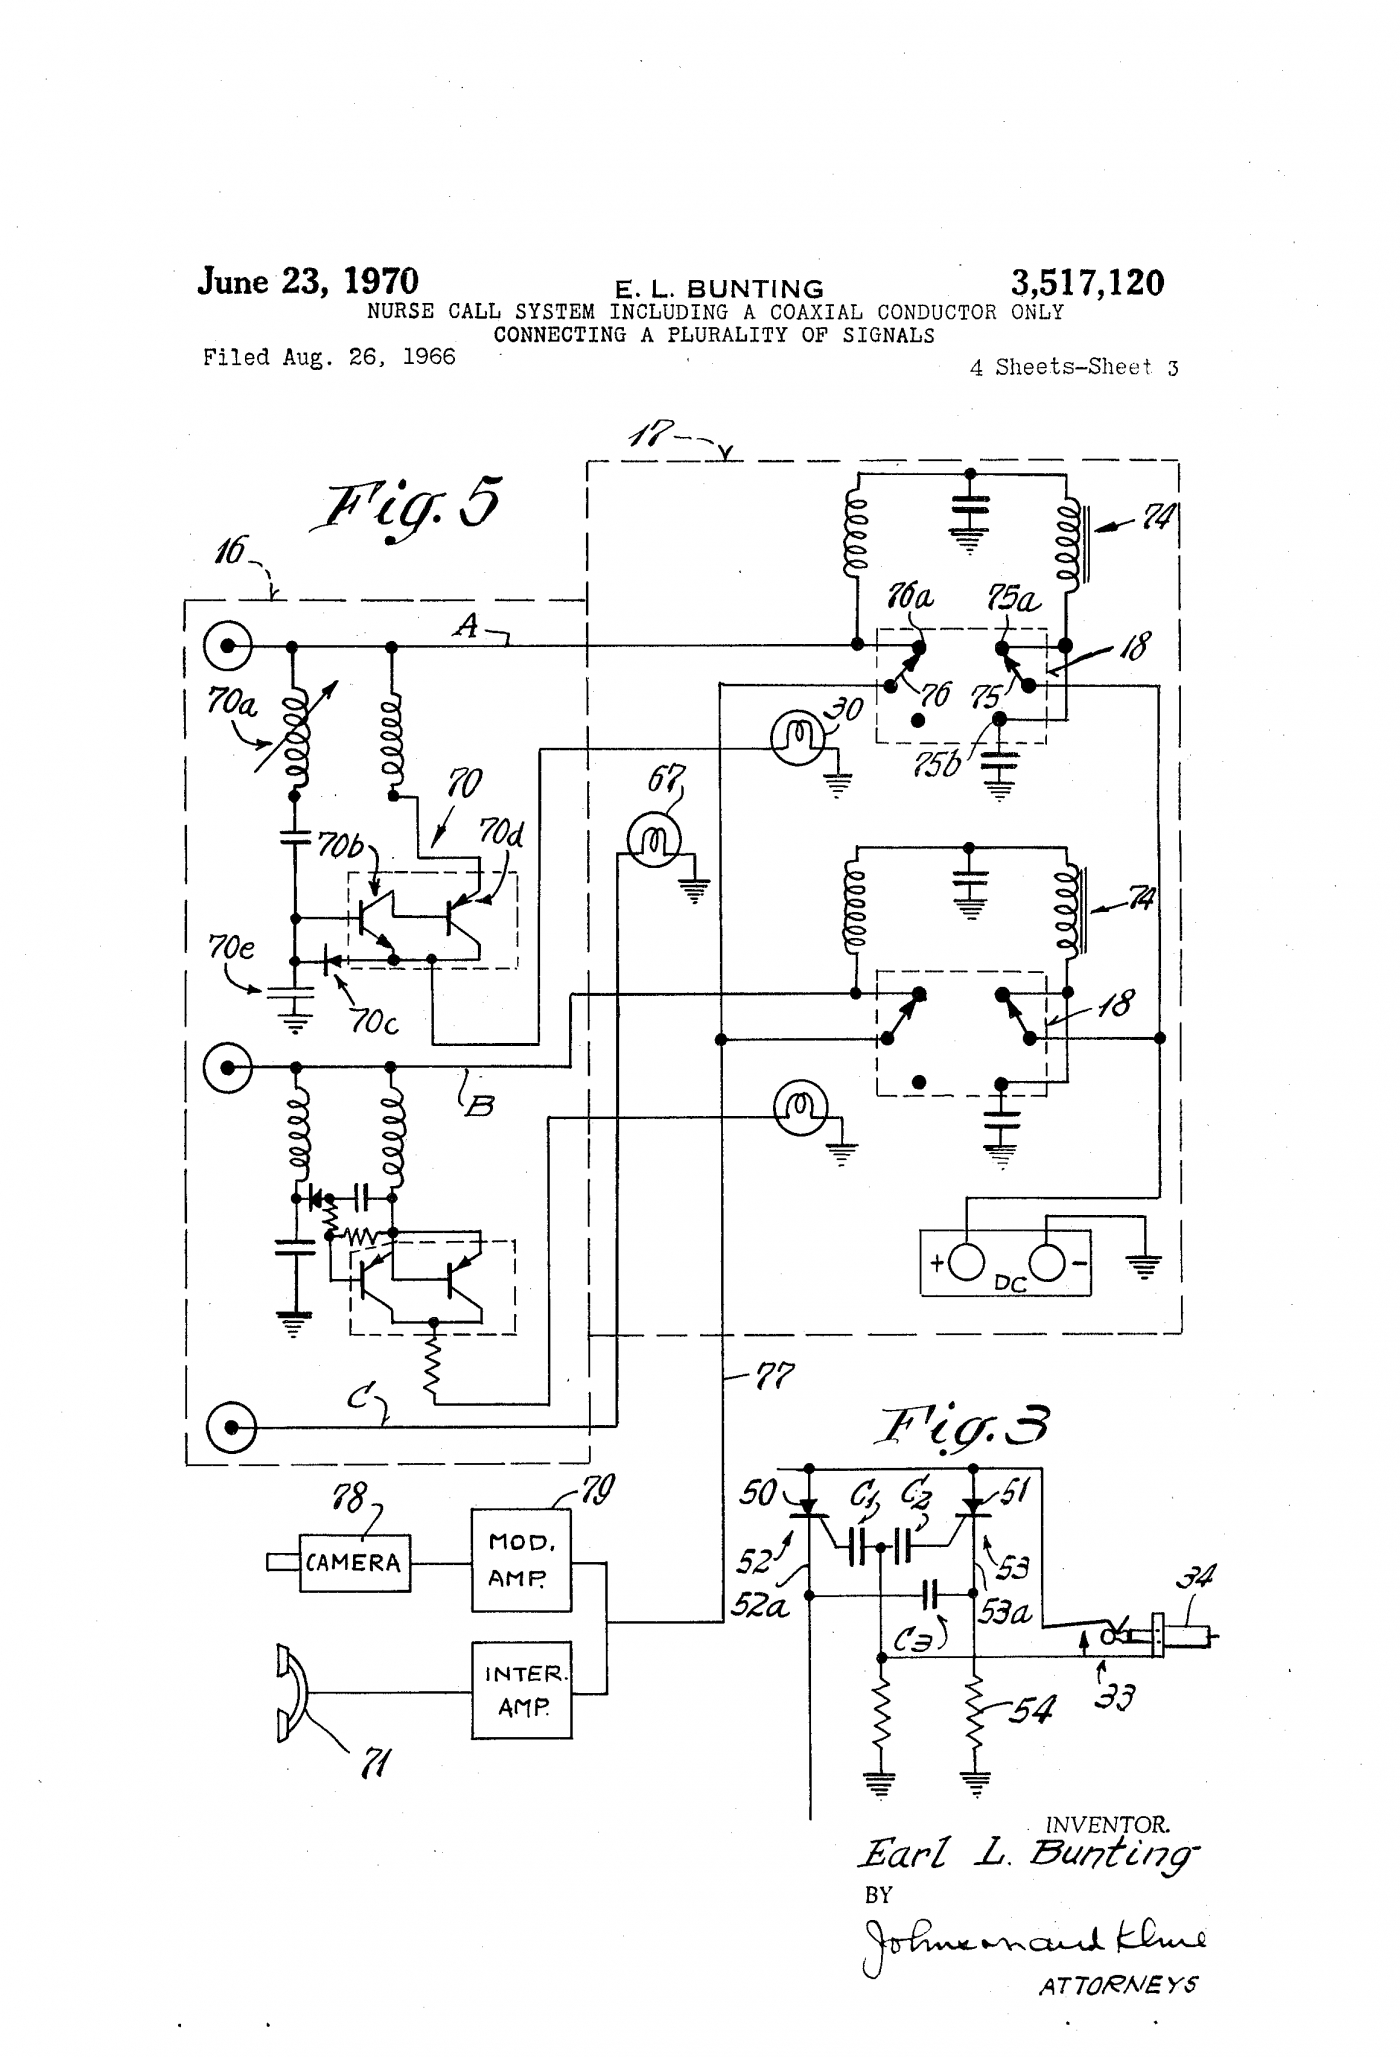 Jeron Nurse Call Wiring Diagram Gallery